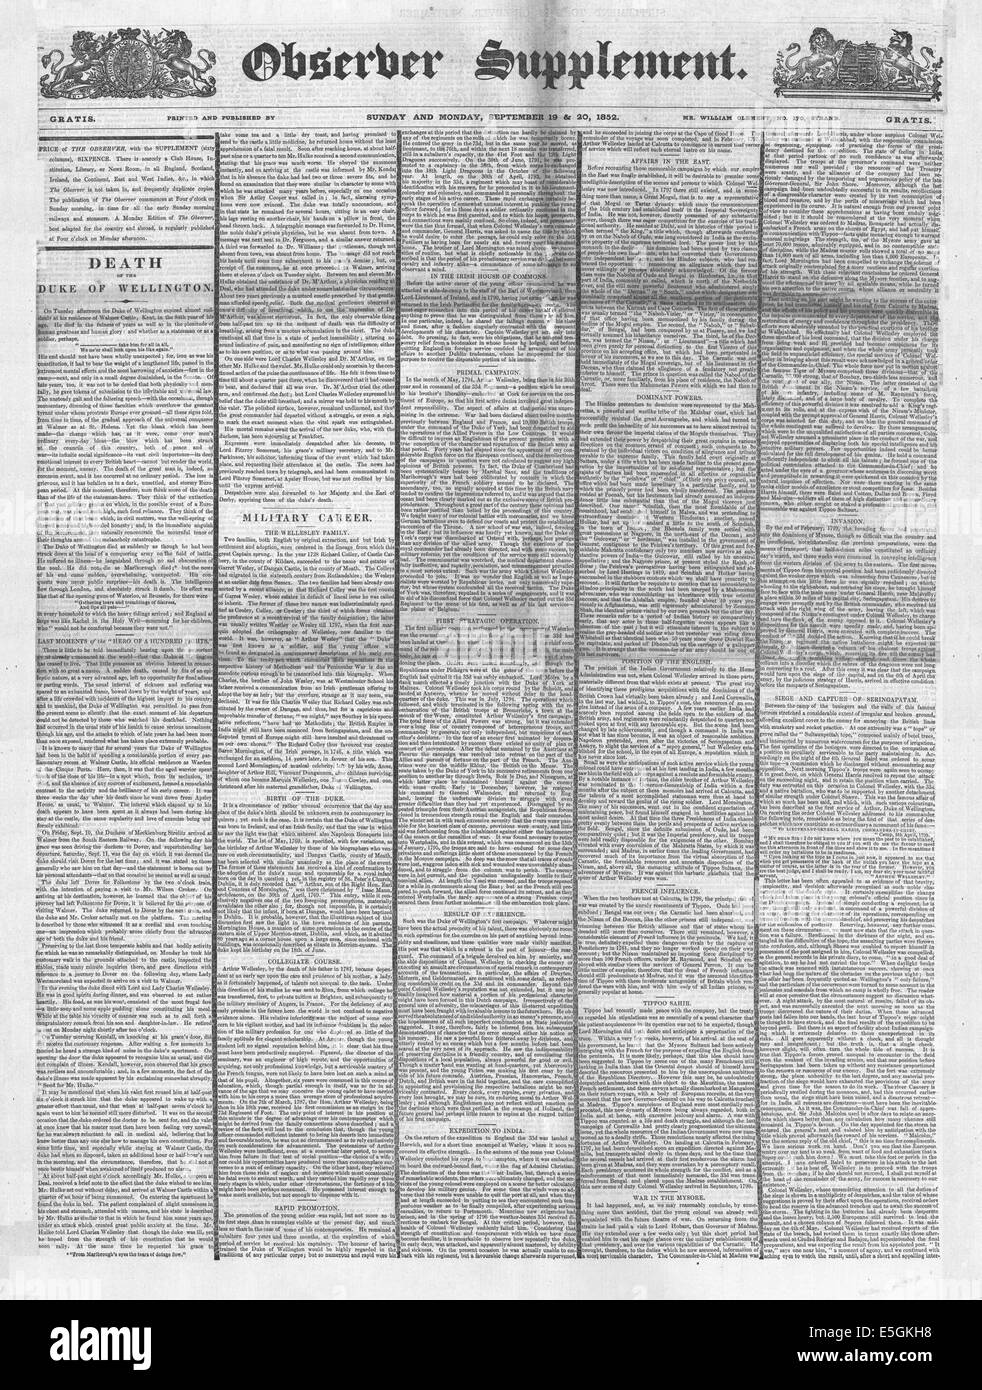 1852 Observer Supplement  front page reporting the death of the Duke of Wellington - Stock Image